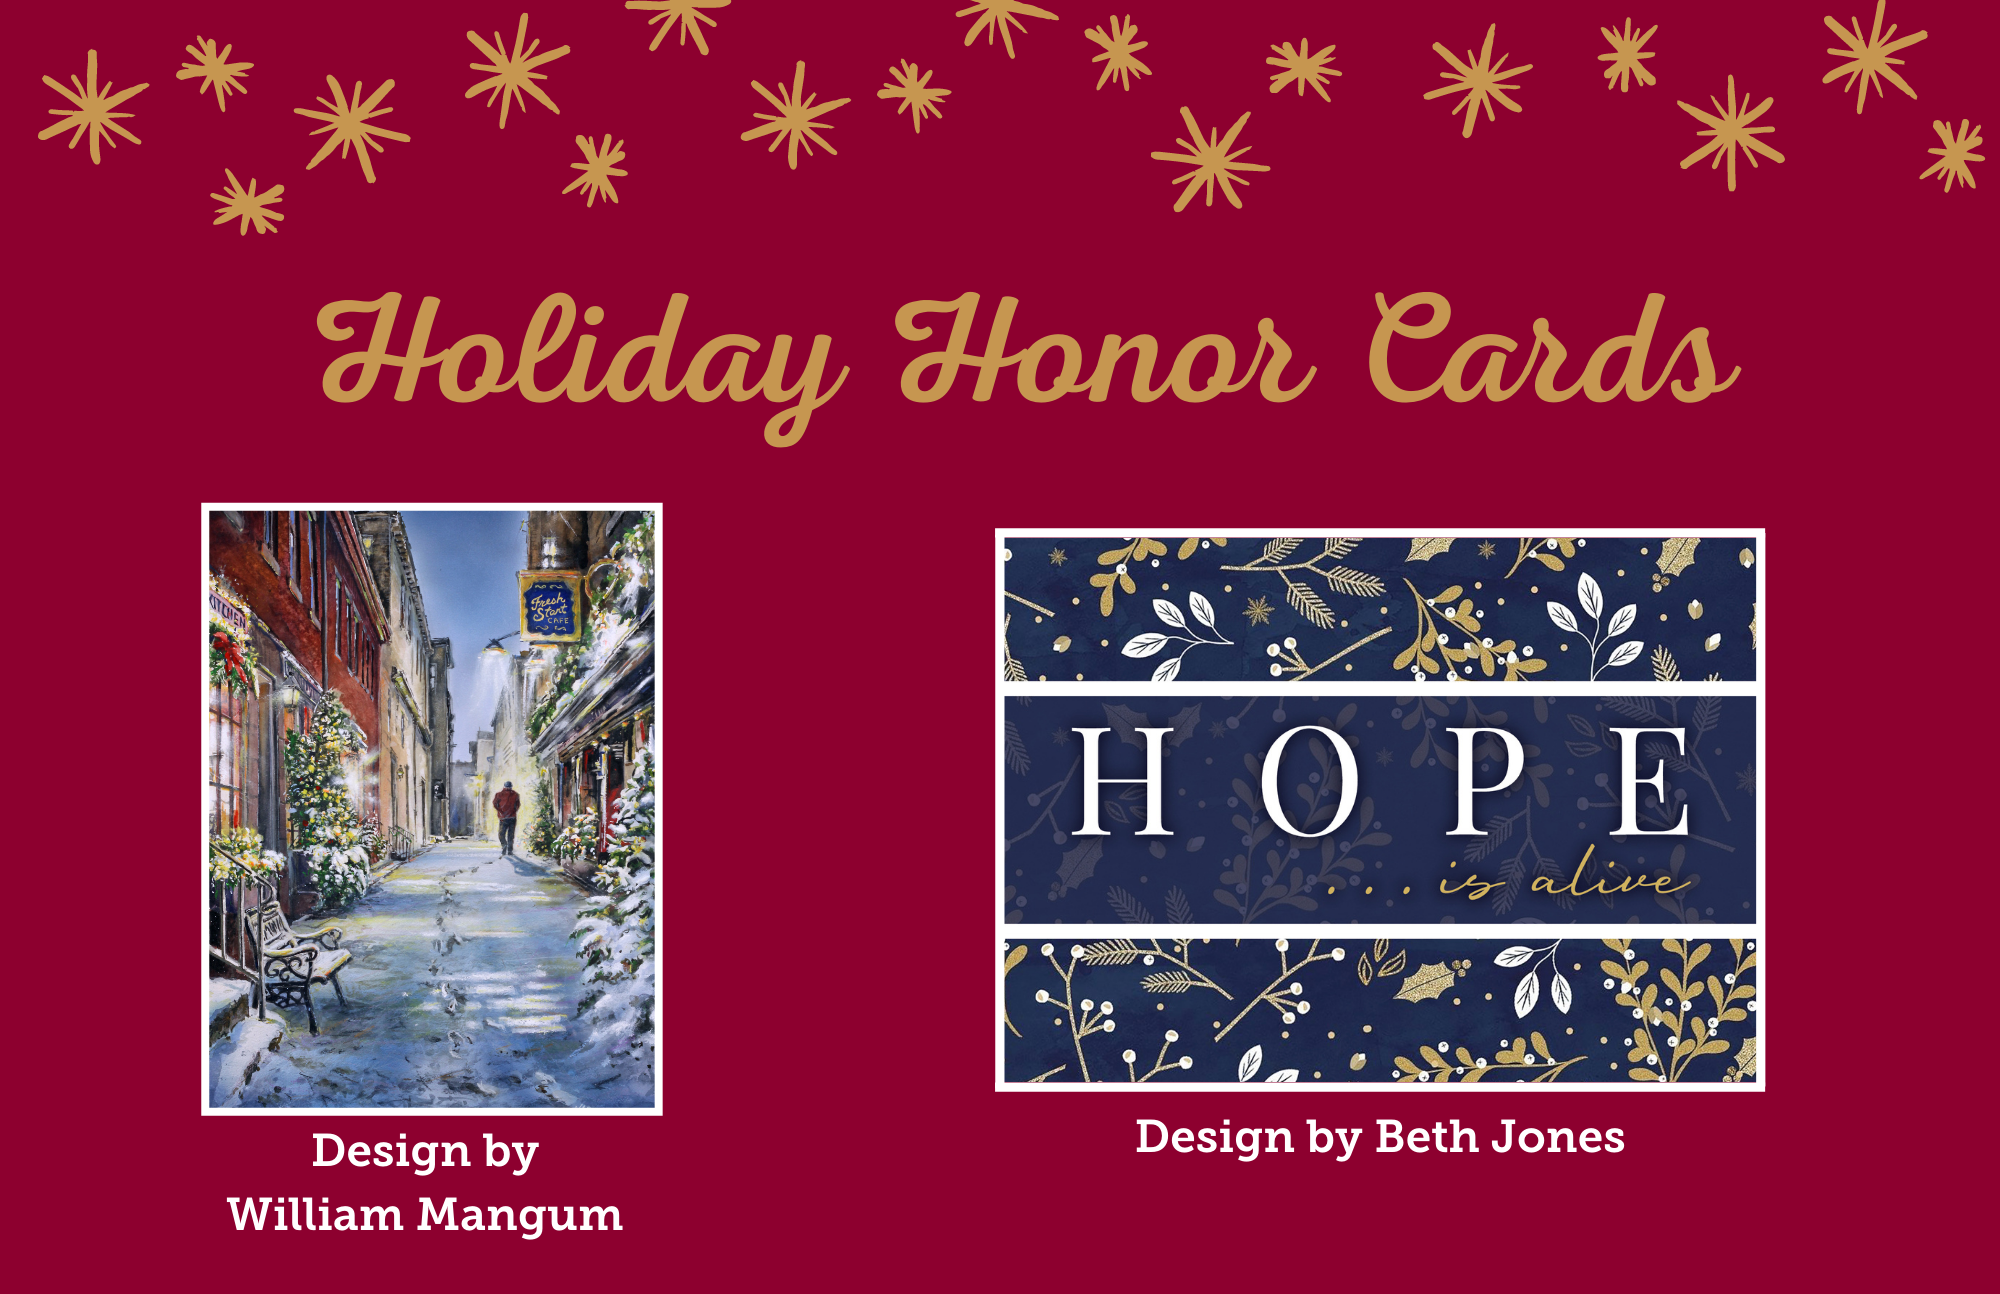 Send a Holiday Card that Means More than Season's Greetings